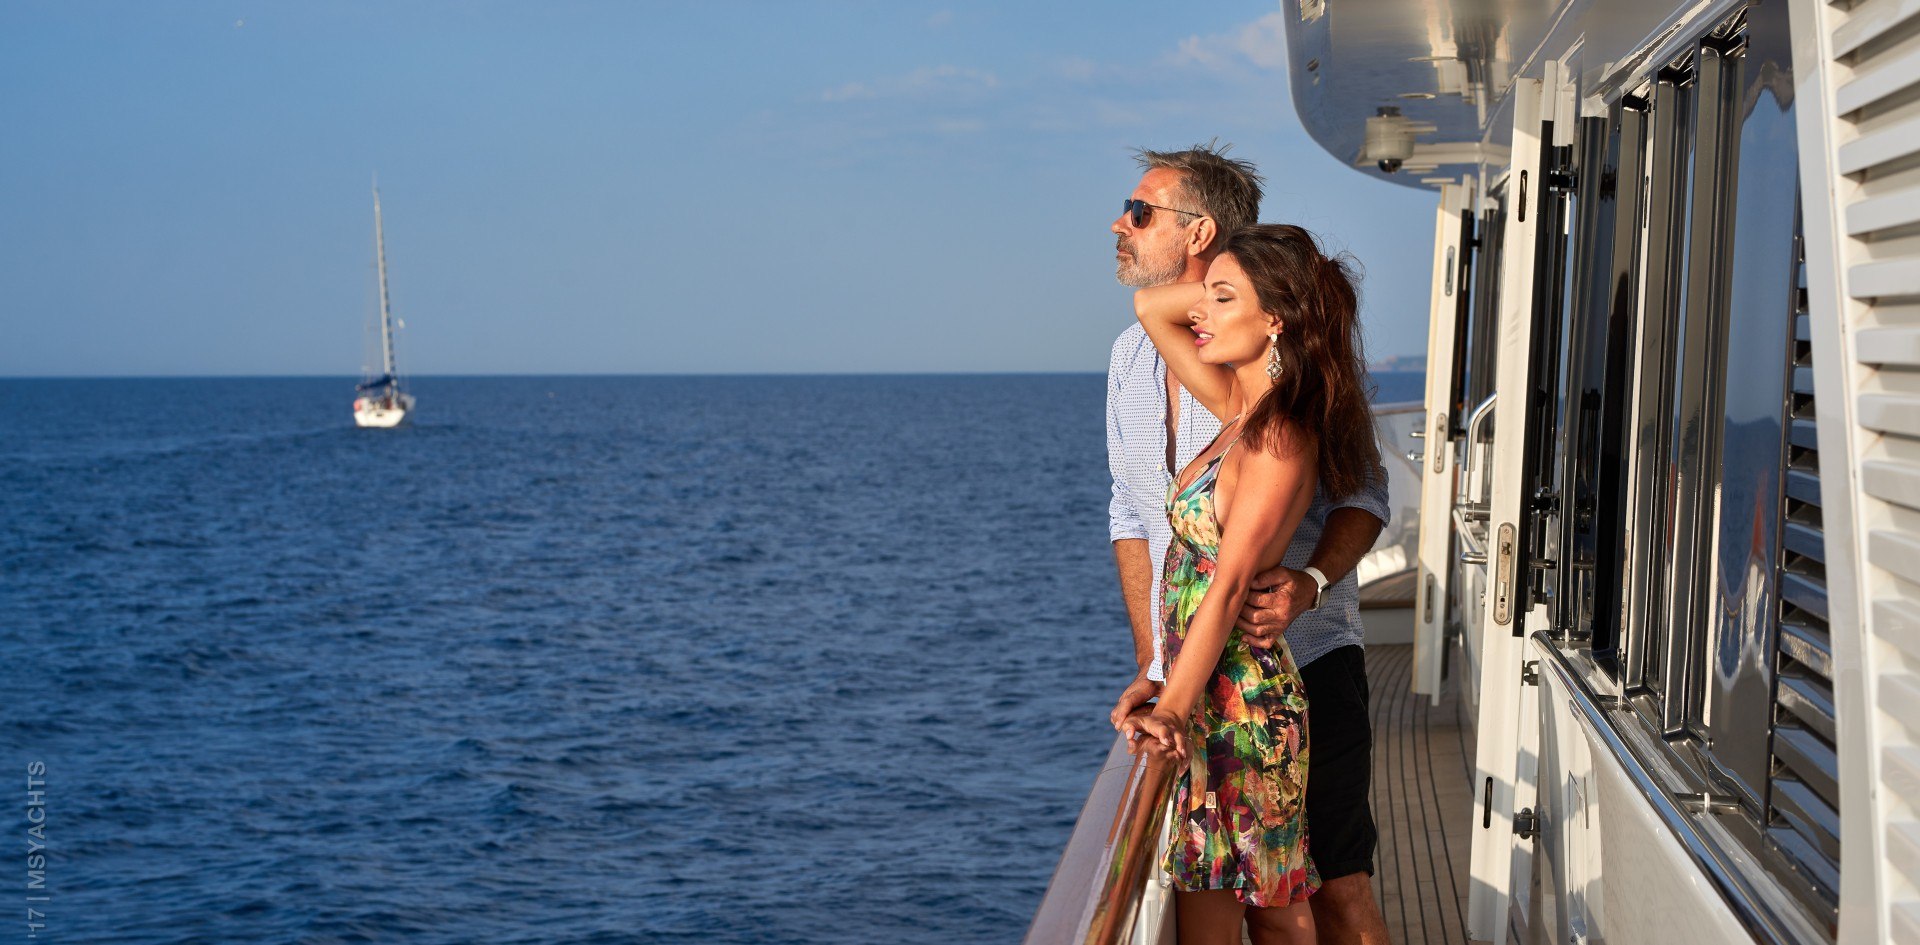 Make you Valentine's day the best ever on board a yacht